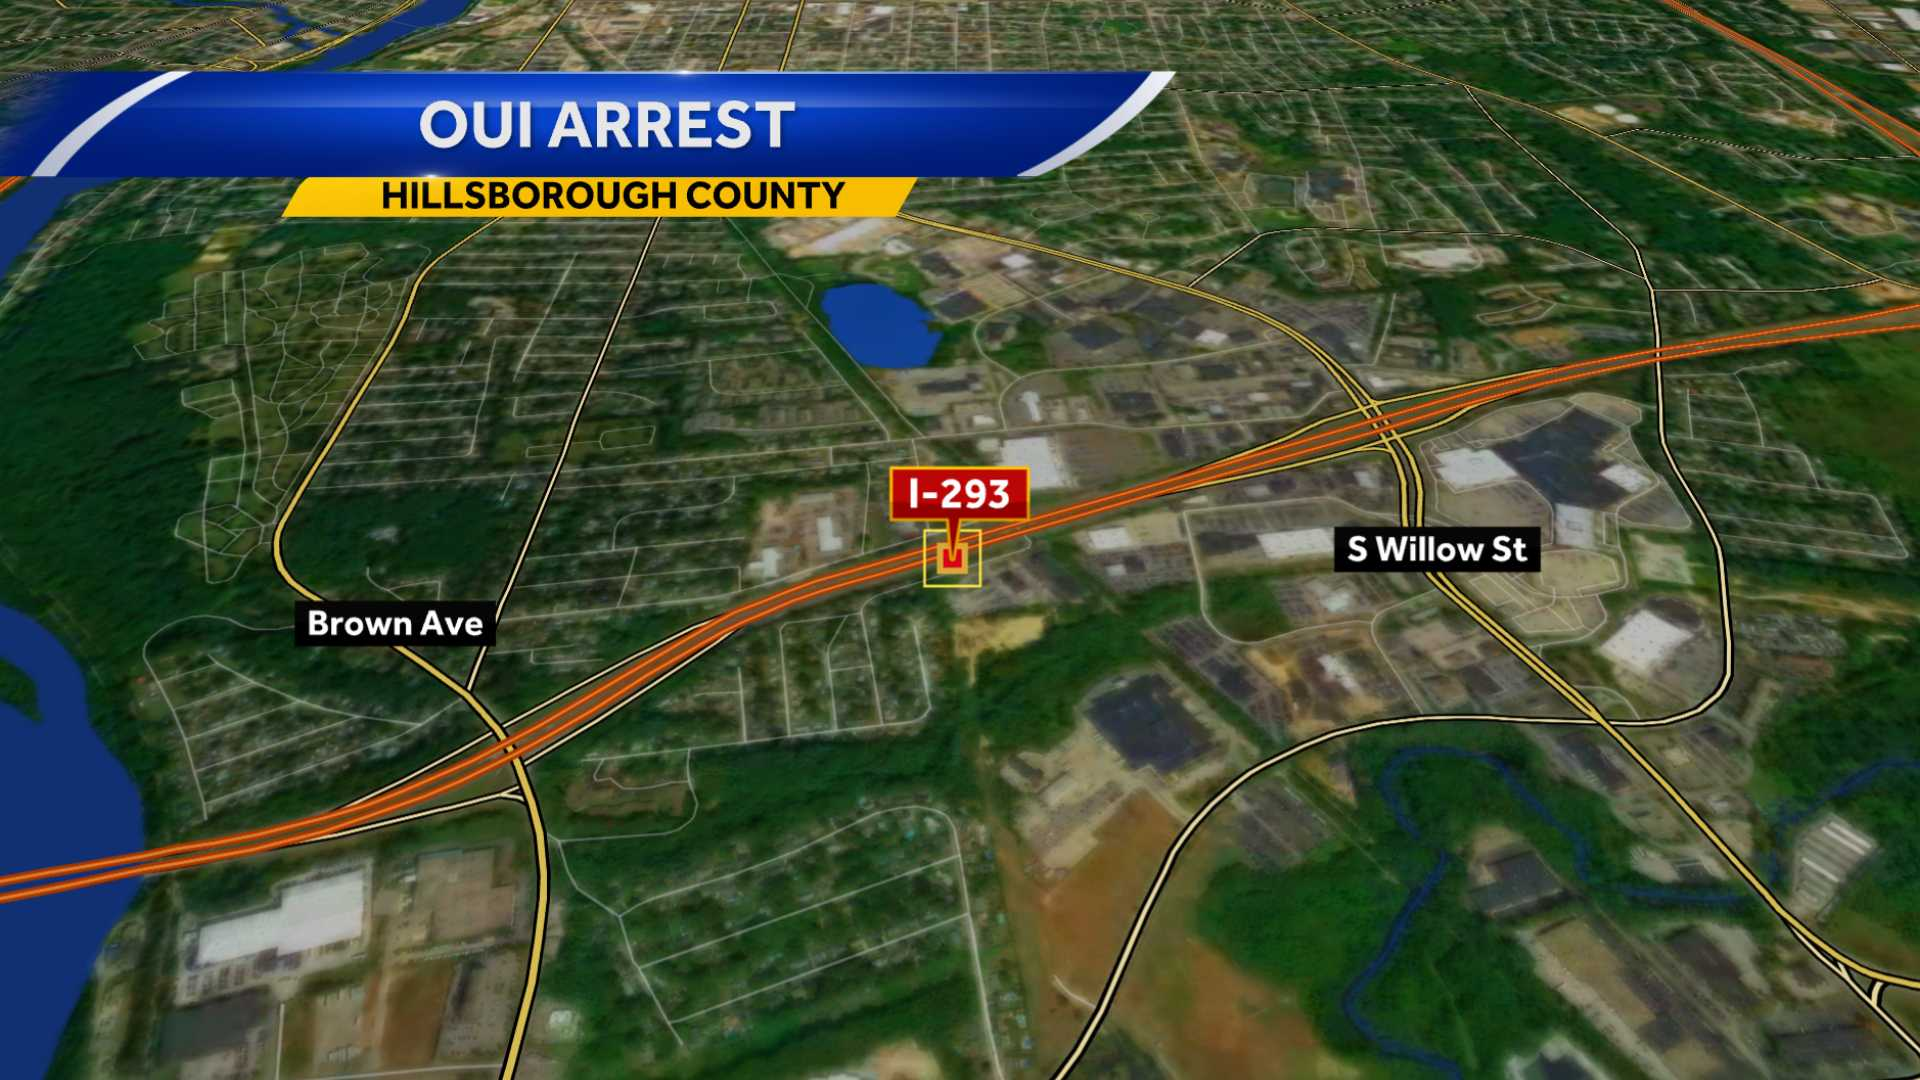 Man charged with OUI after crash on I-293